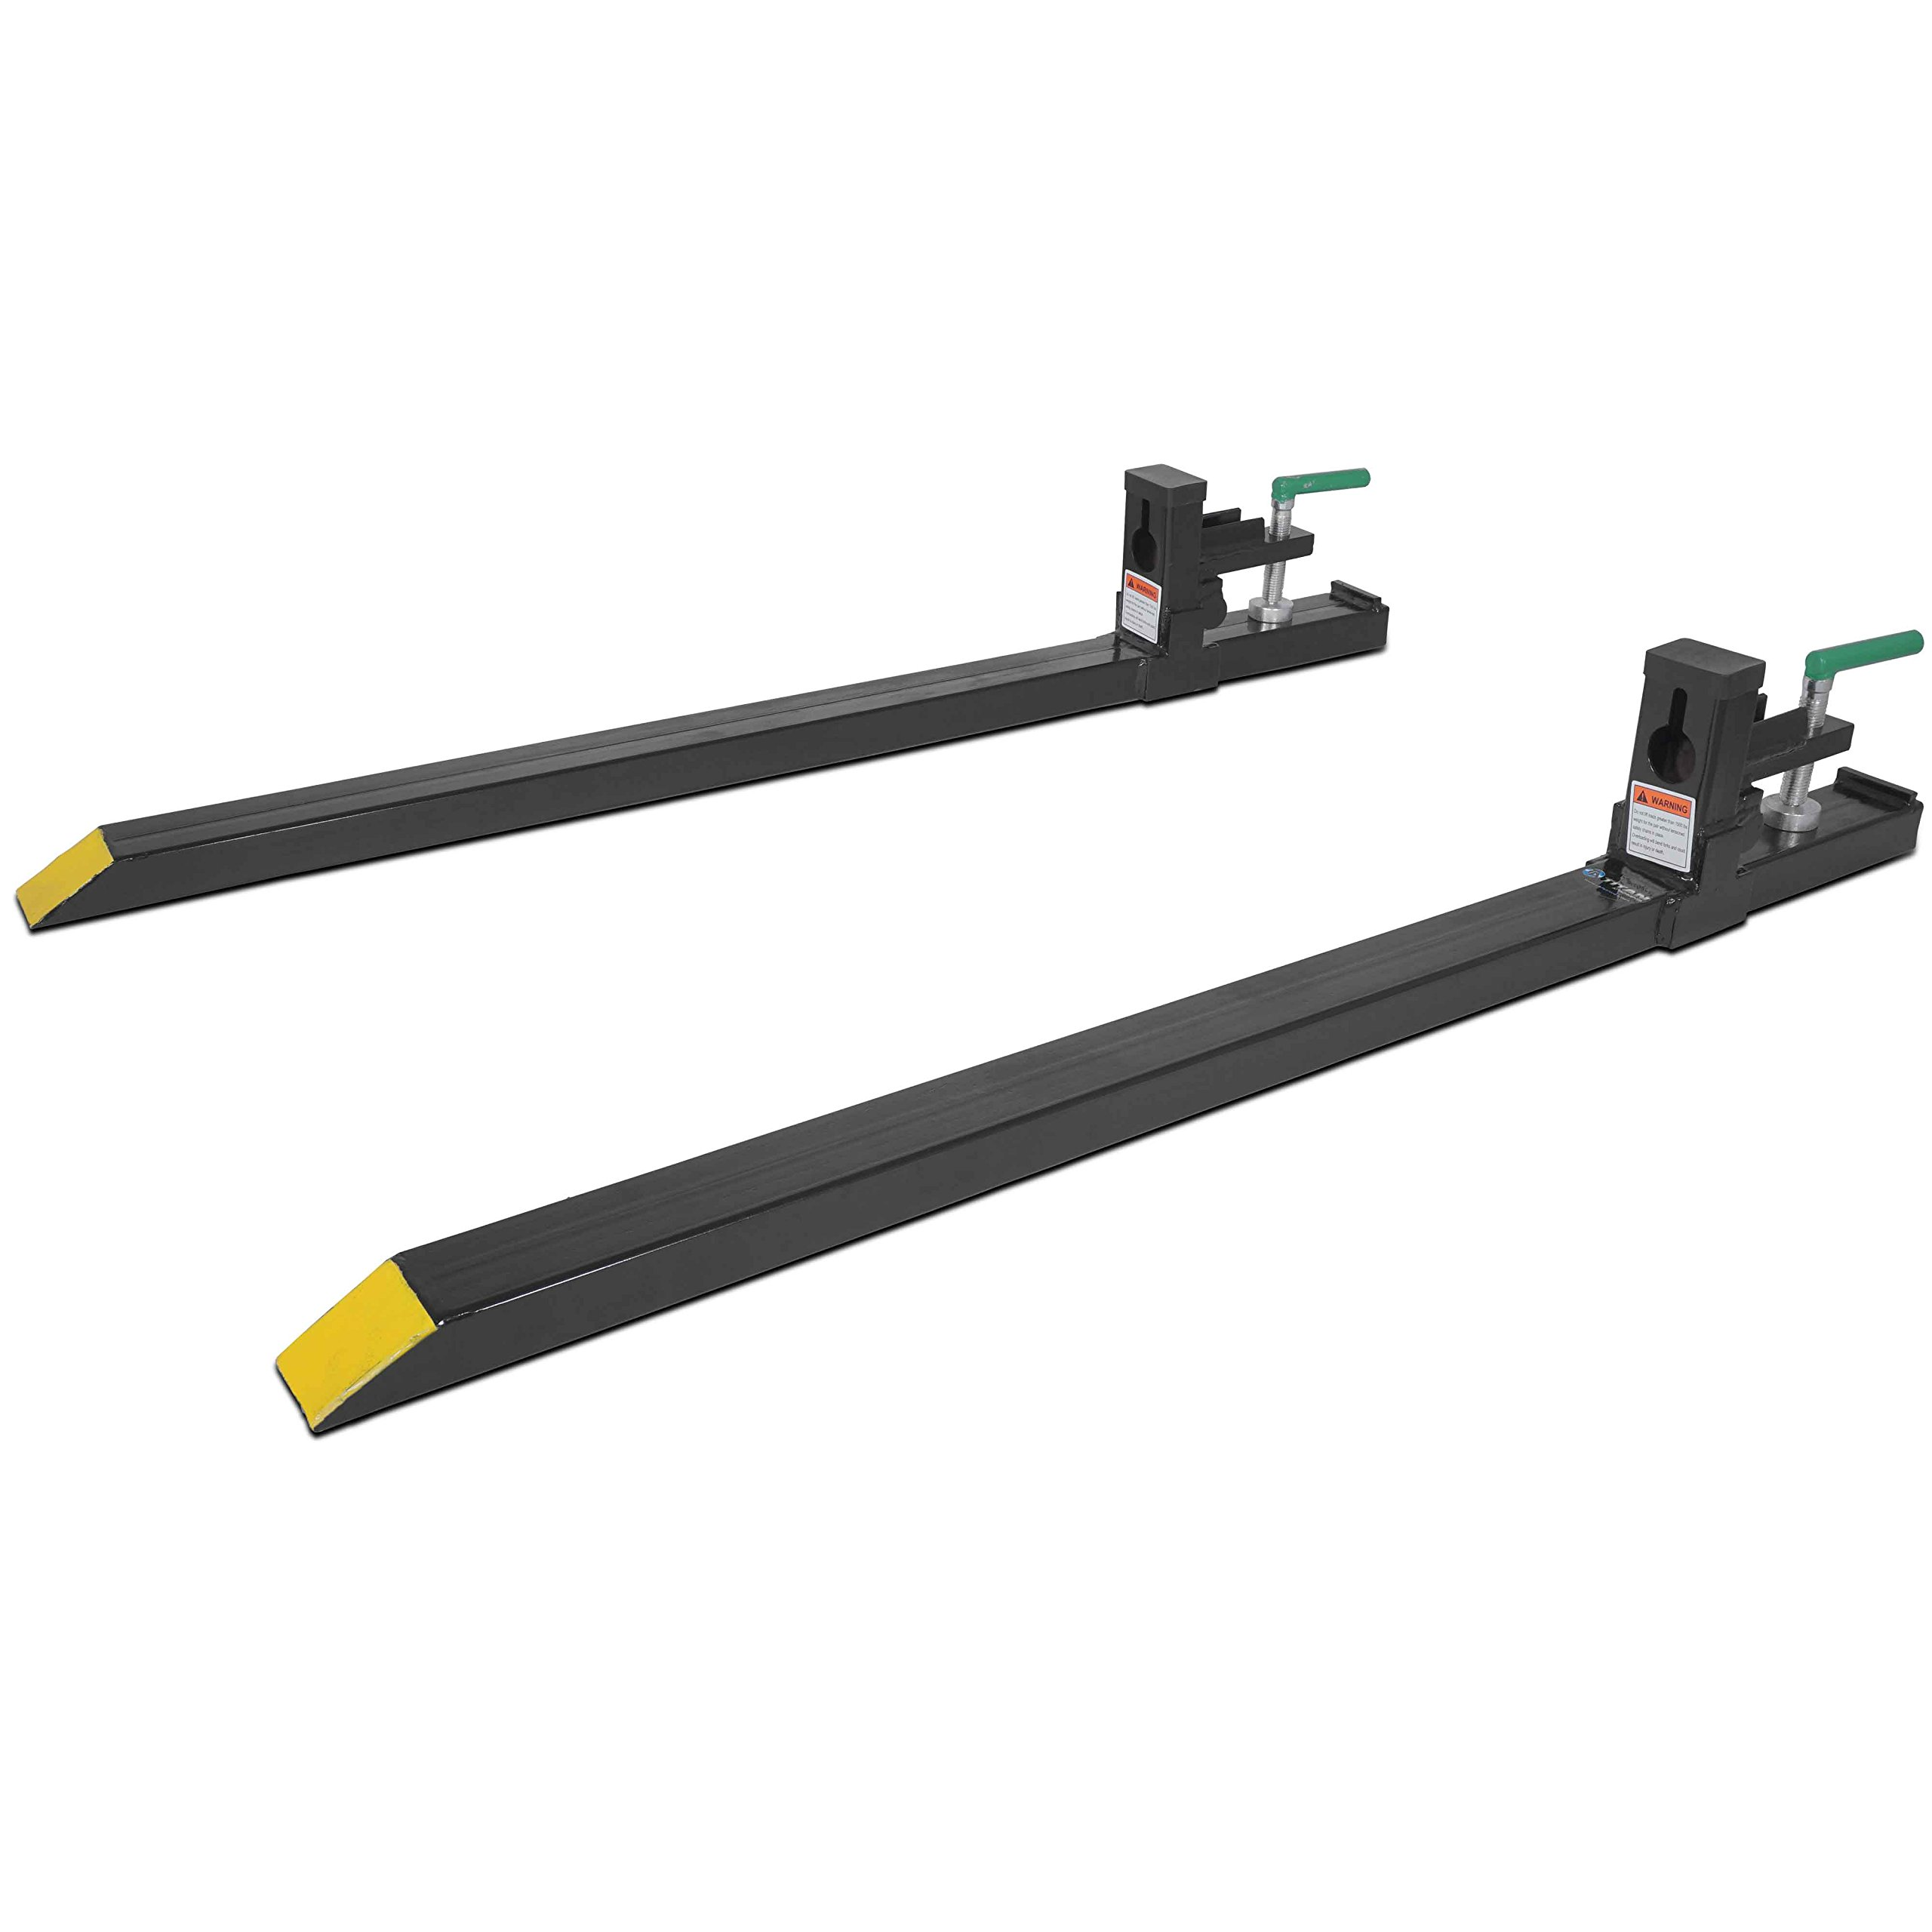 Clamp on LW Pallet Forks 1500 lb for bucket loaders tractors or skid steers (COF-LW) by Titan Attachments